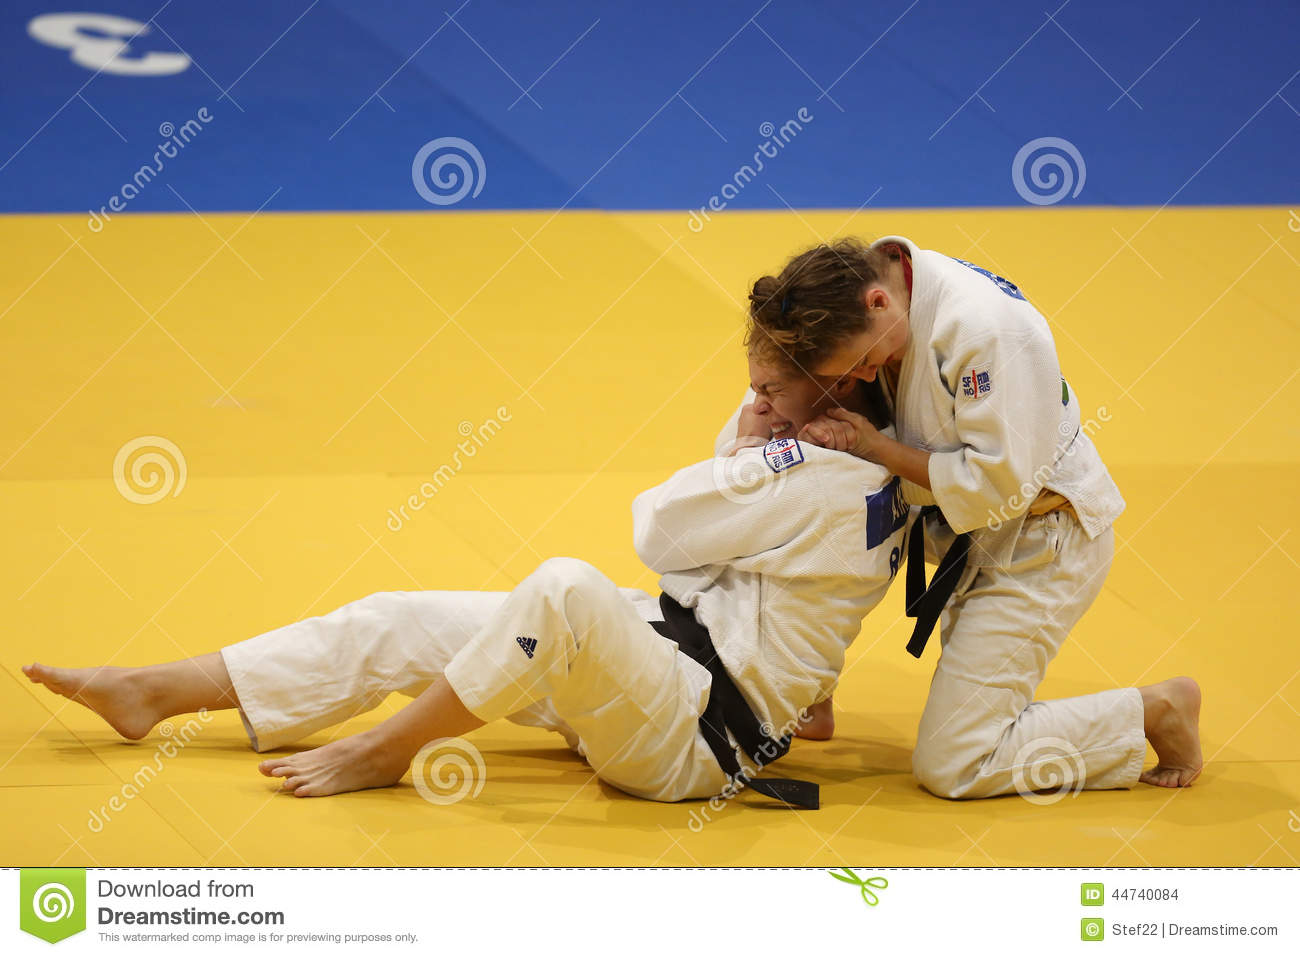 women judo video download site